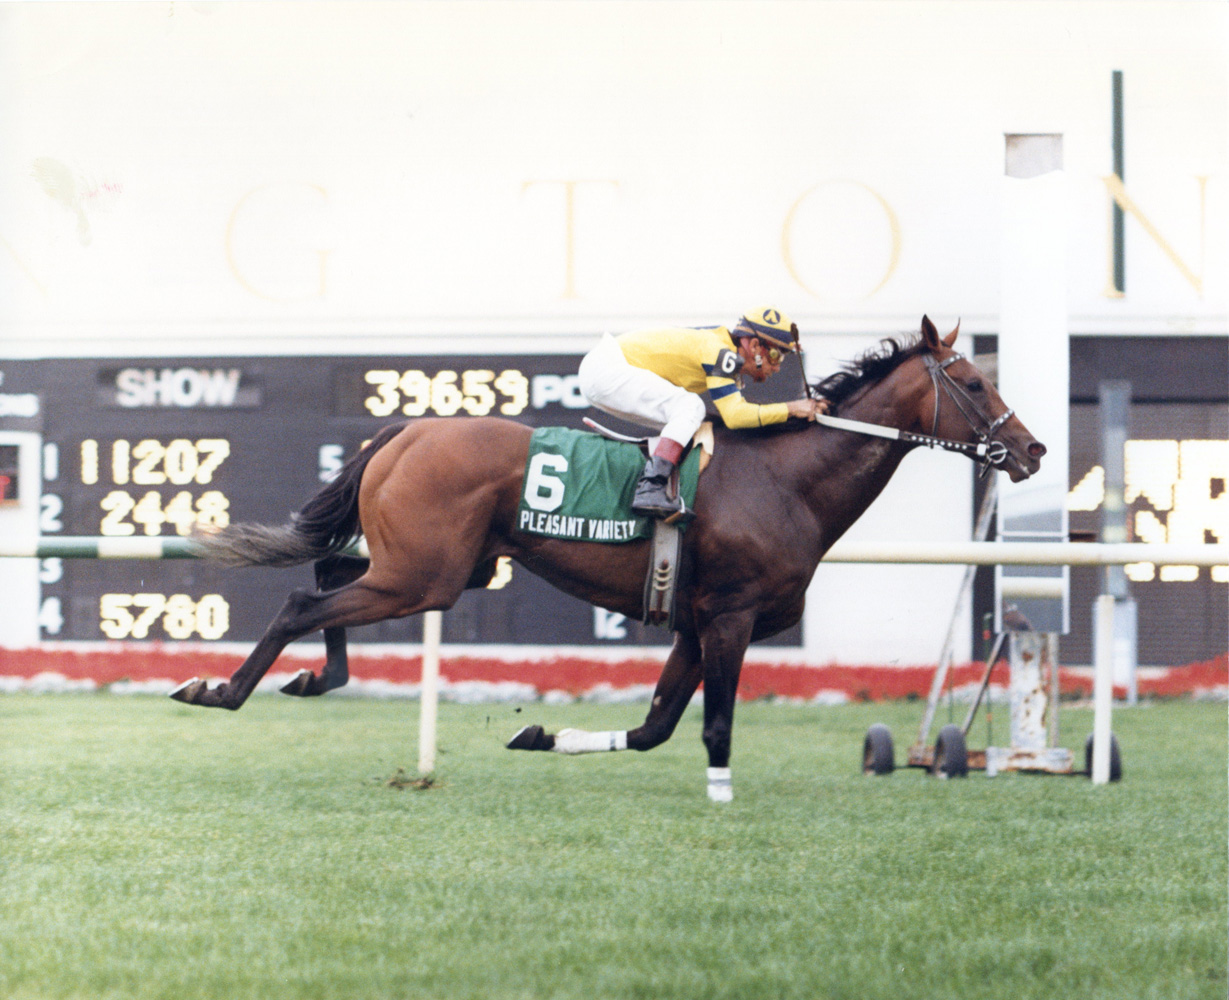 Earlie Fires and Pleasant Variety winning the 1990 Arlington Handicap at Arlington Park (Four Footed Fotos/Museum Collection)